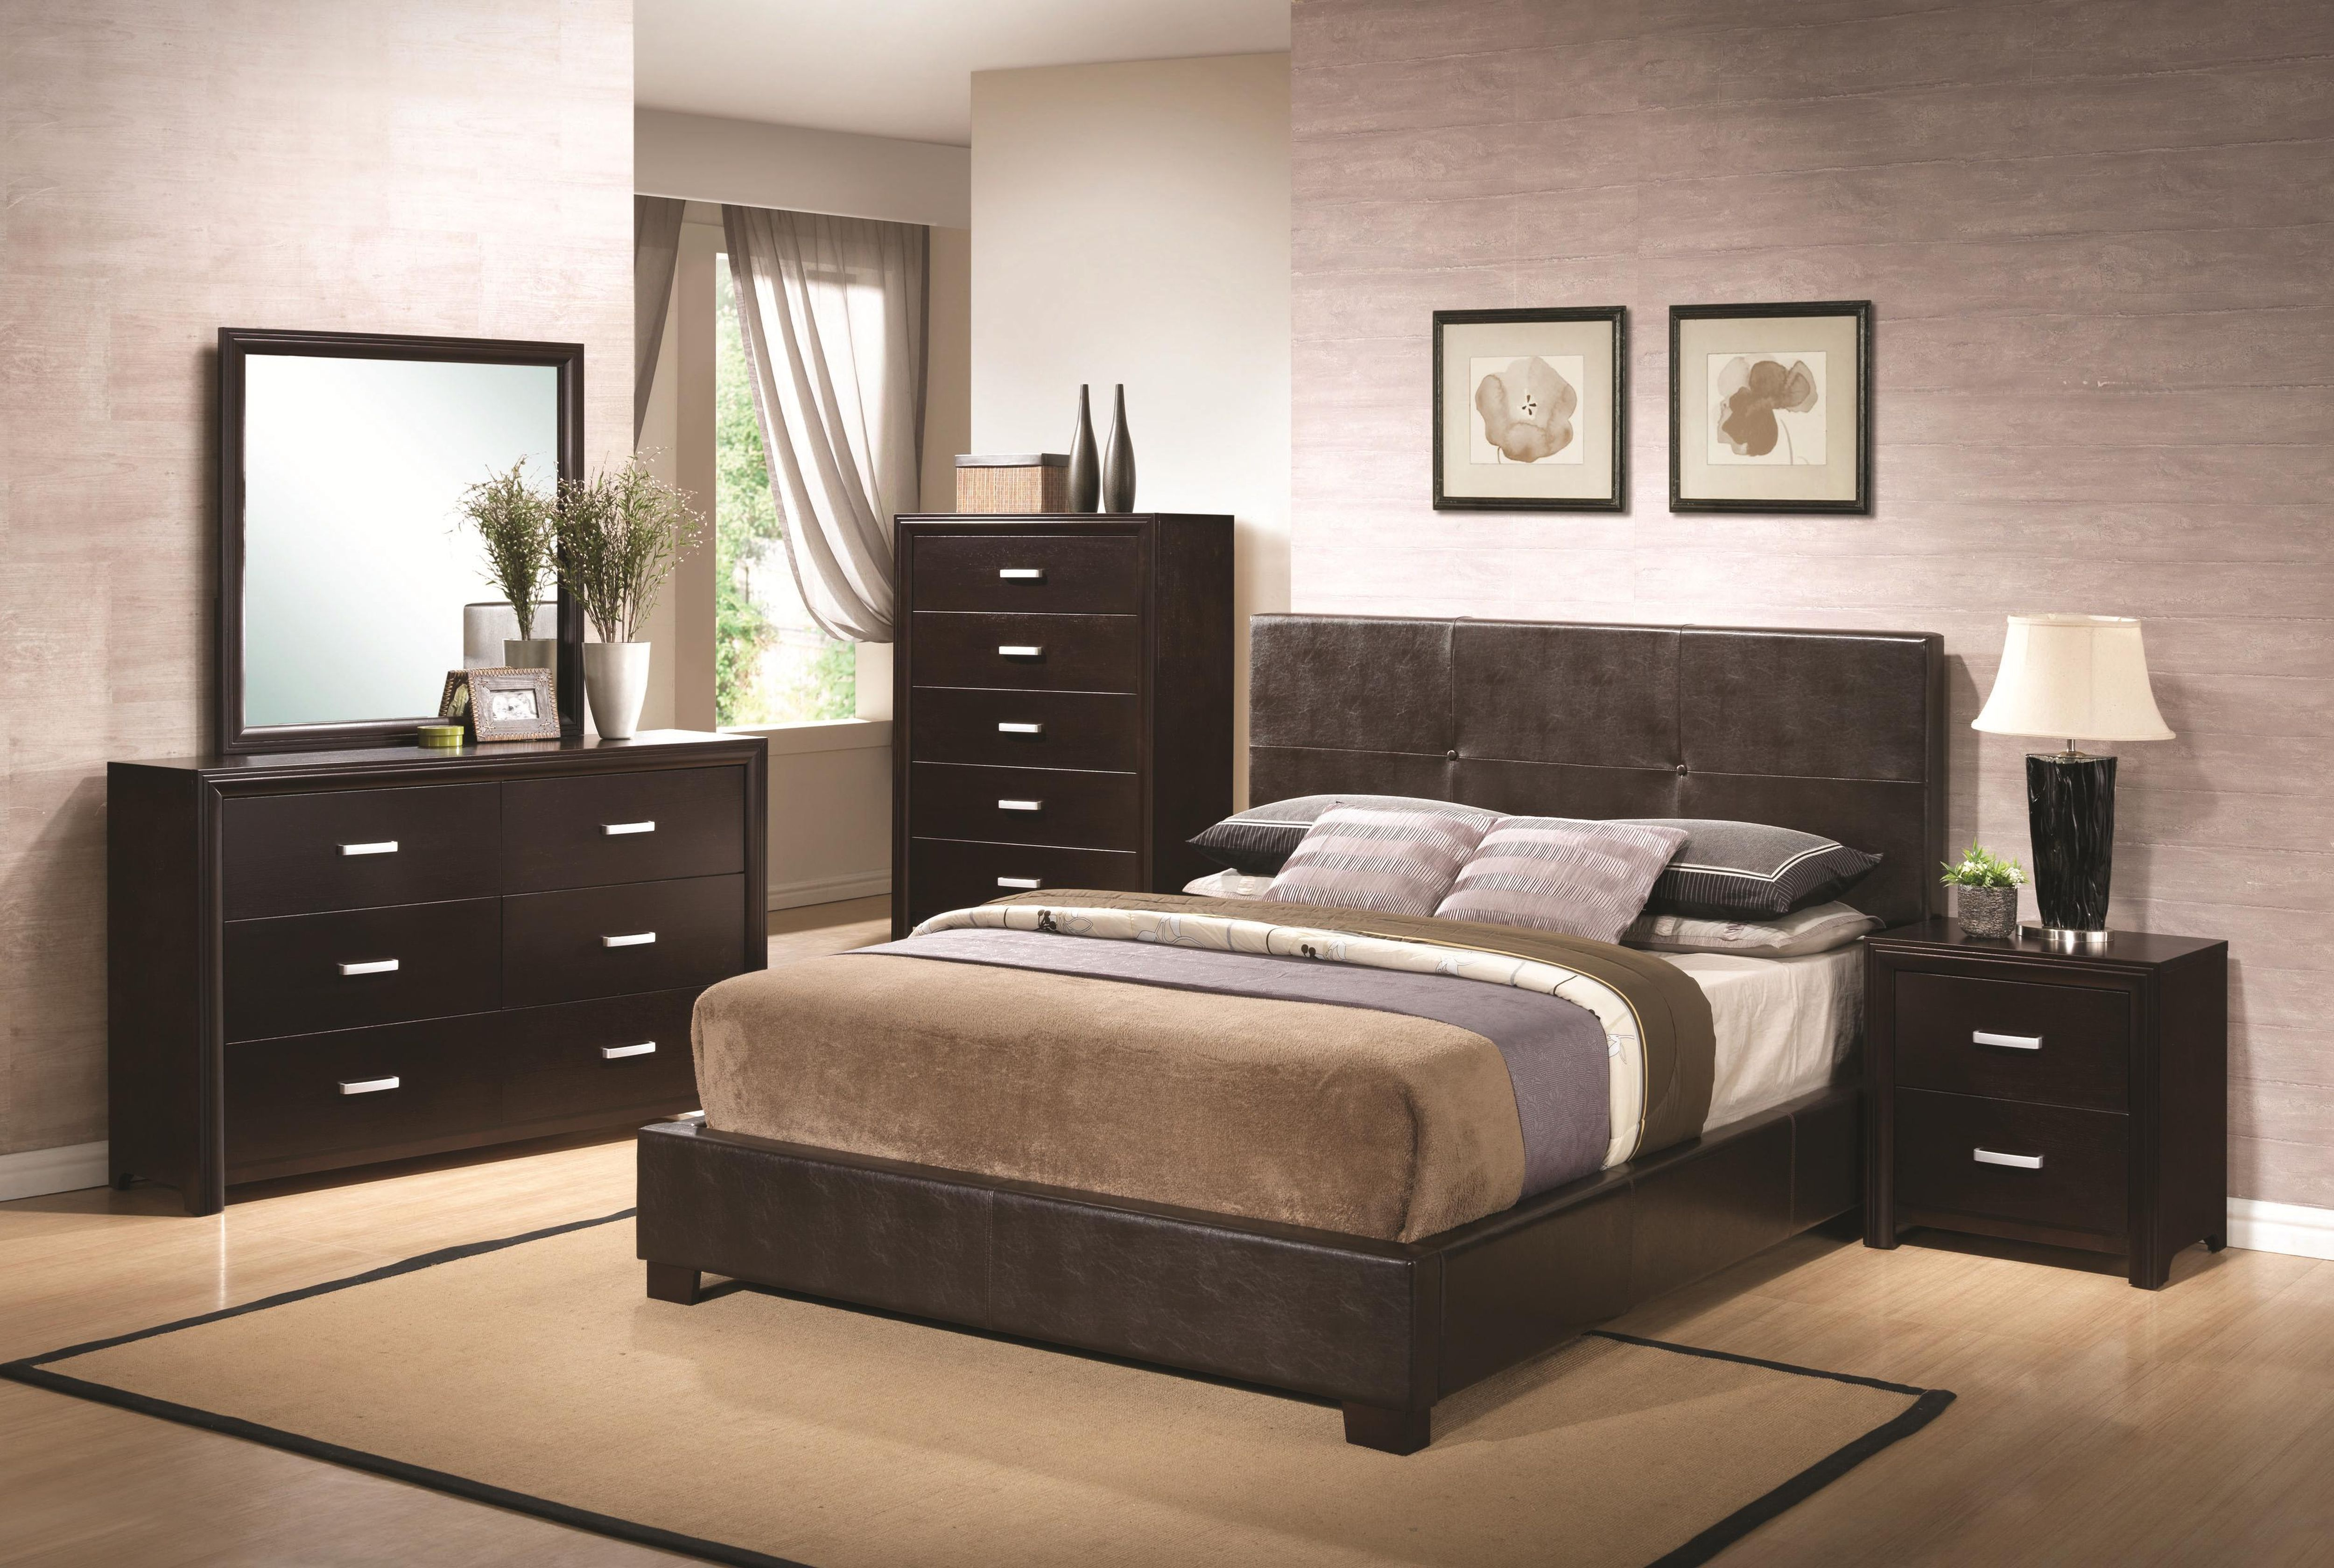 Bedroom Interesting Bedroom Adorable Bedroom Sets Designs